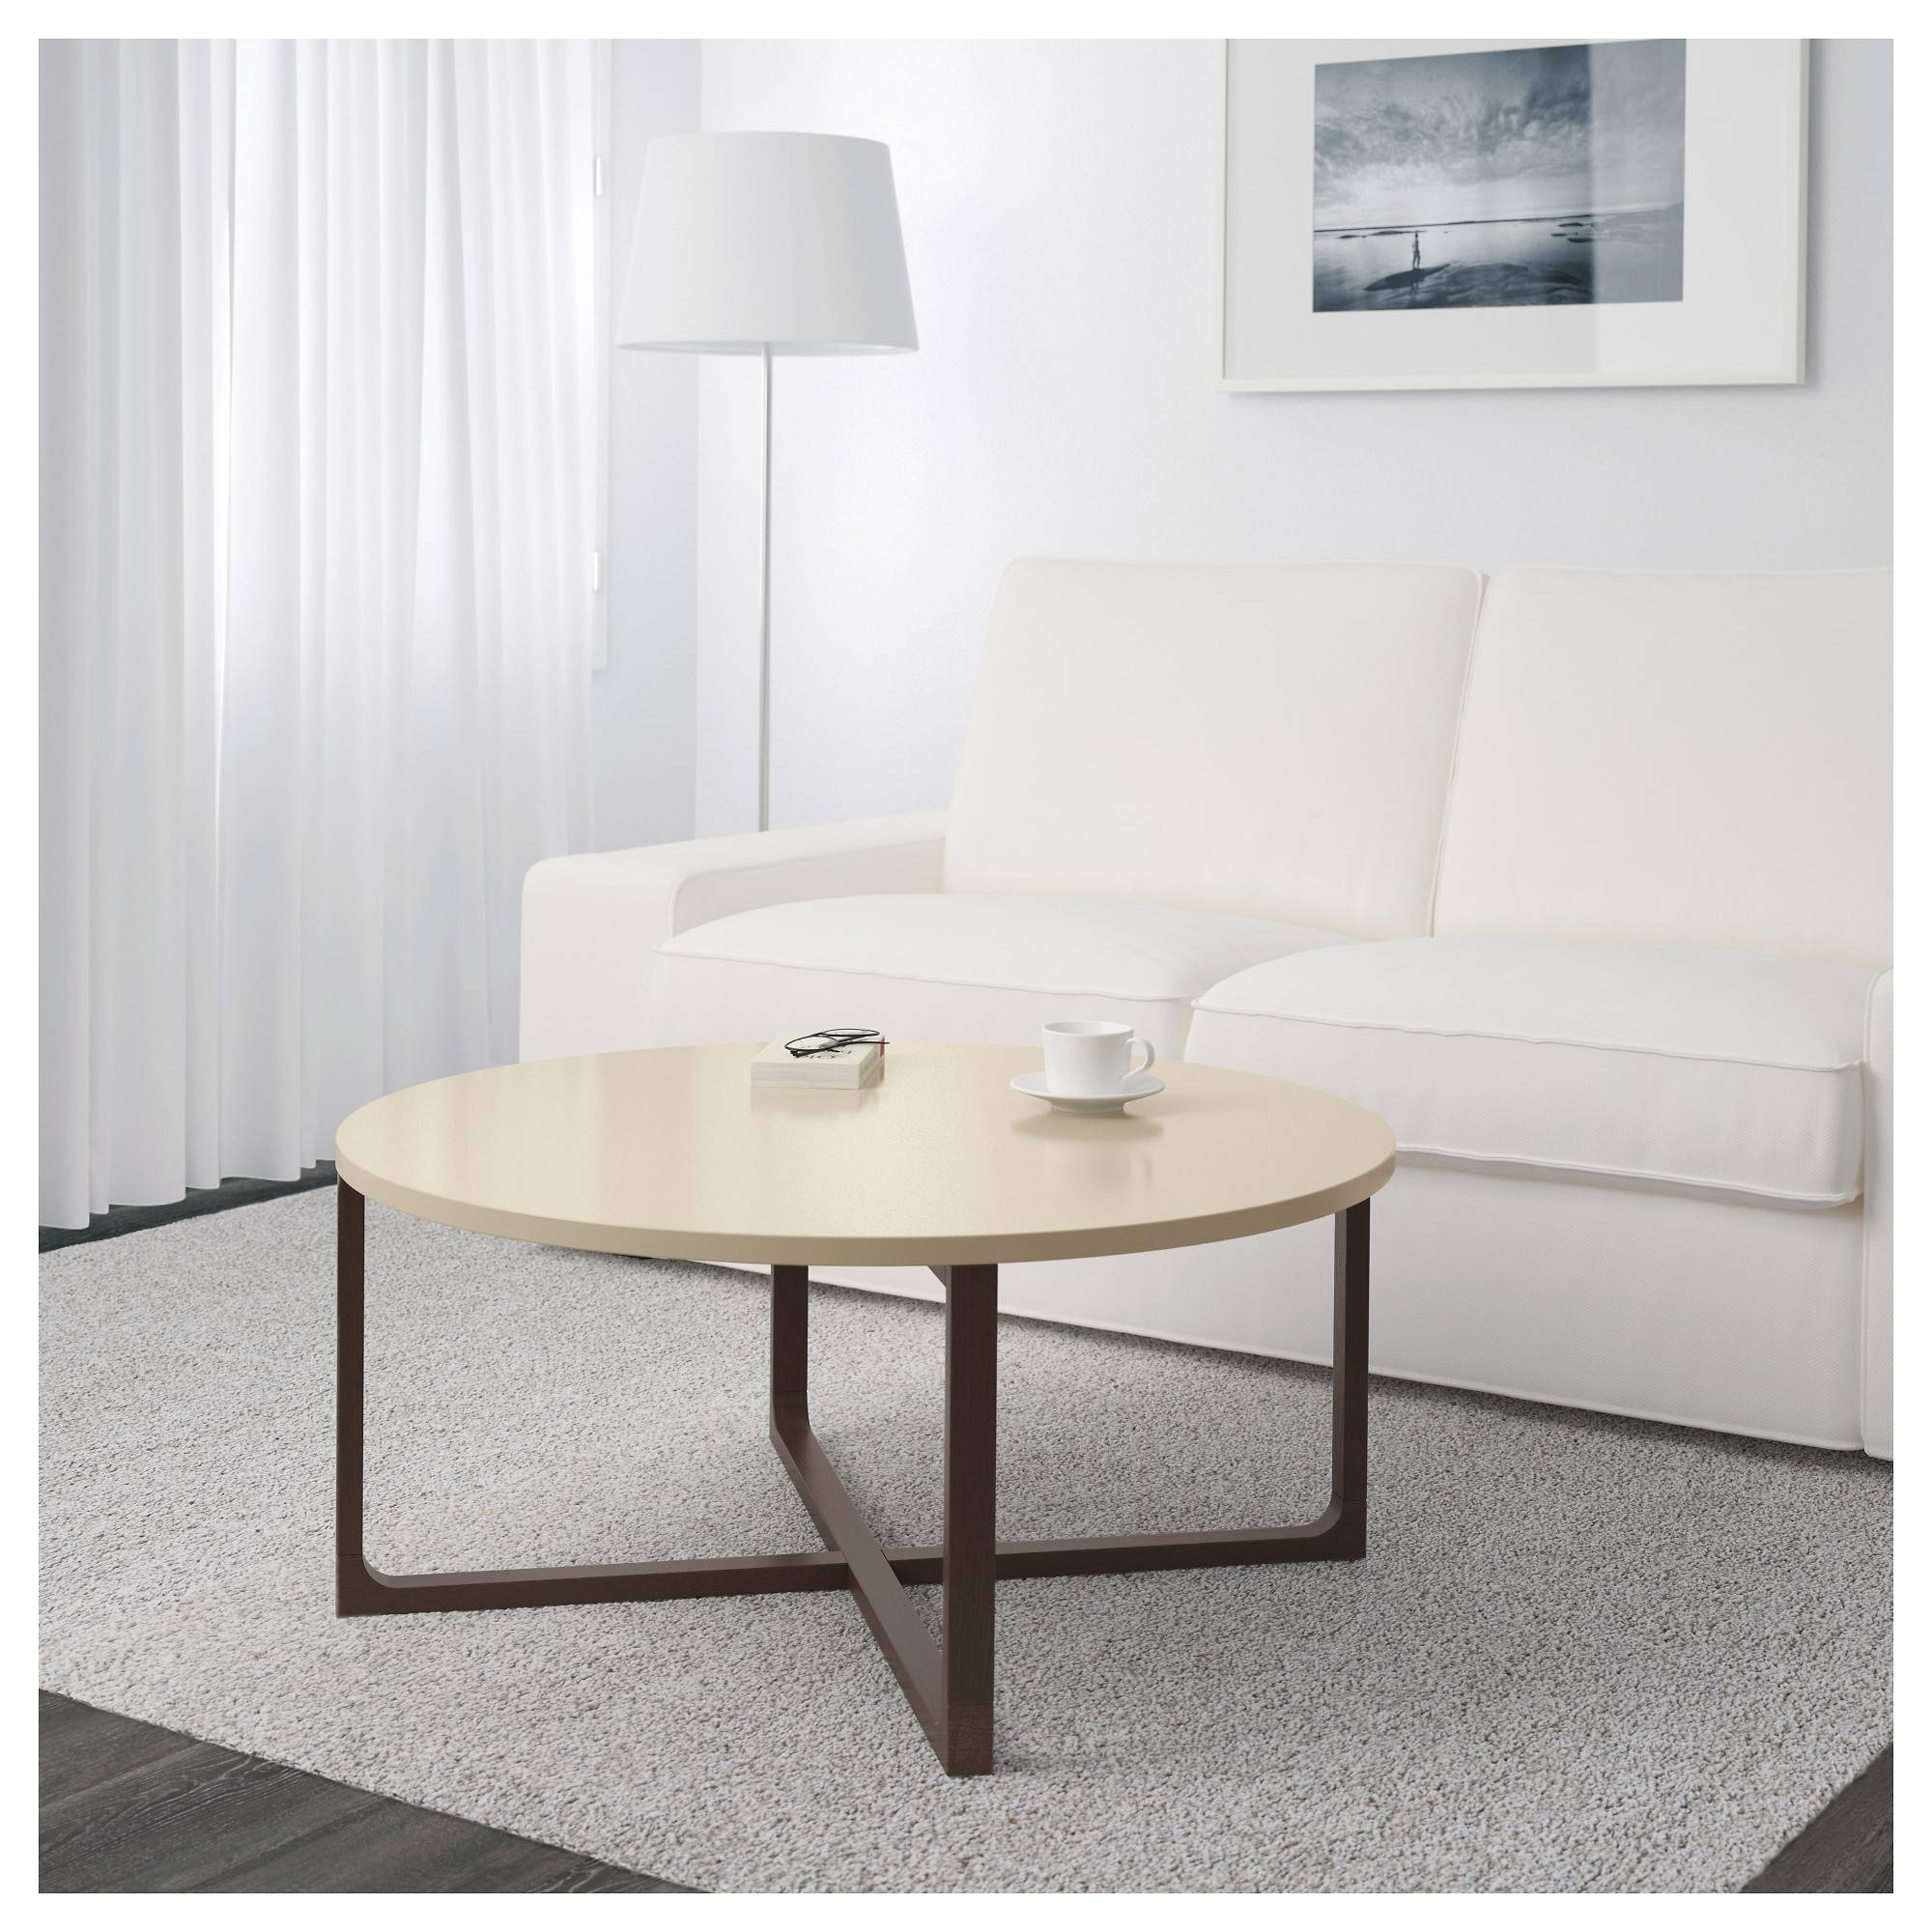 Rissna Coffee Table – Ikea Inside Beige Coffee Tables (View 4 of 30)